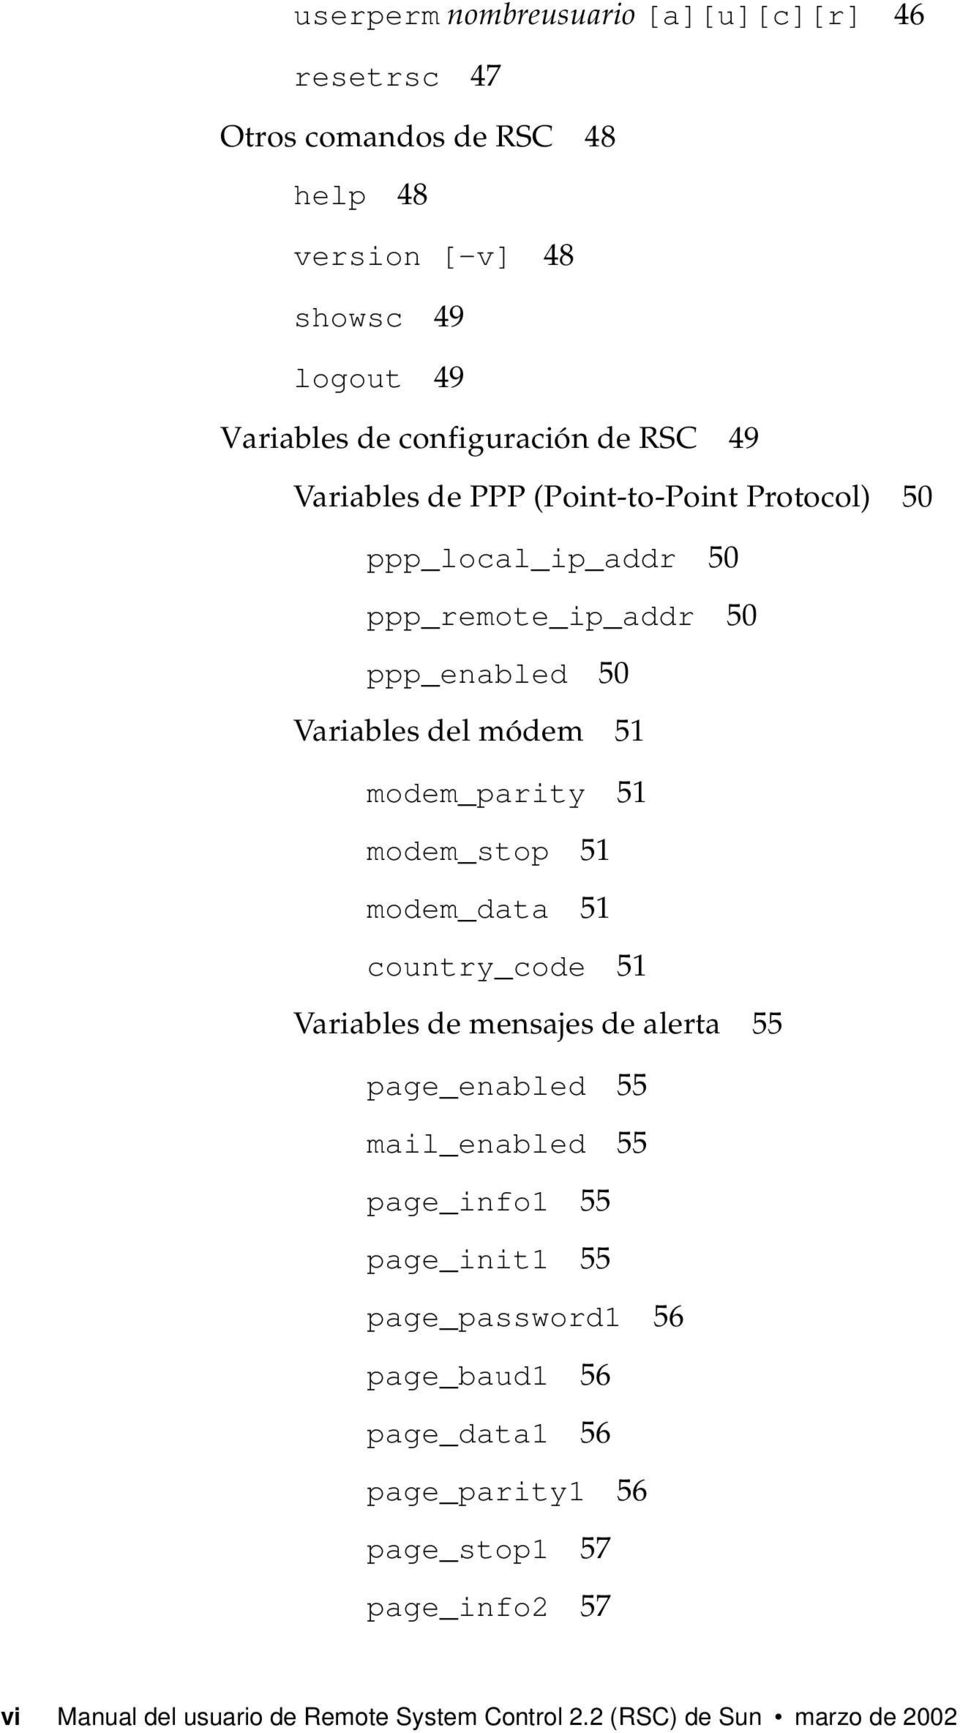 modem_stop 51 modem_data 51 country_code 51 Variables de mensajes de alerta 55 page_enabled 55 mail_enabled 55 page_info1 55 page_init1 55